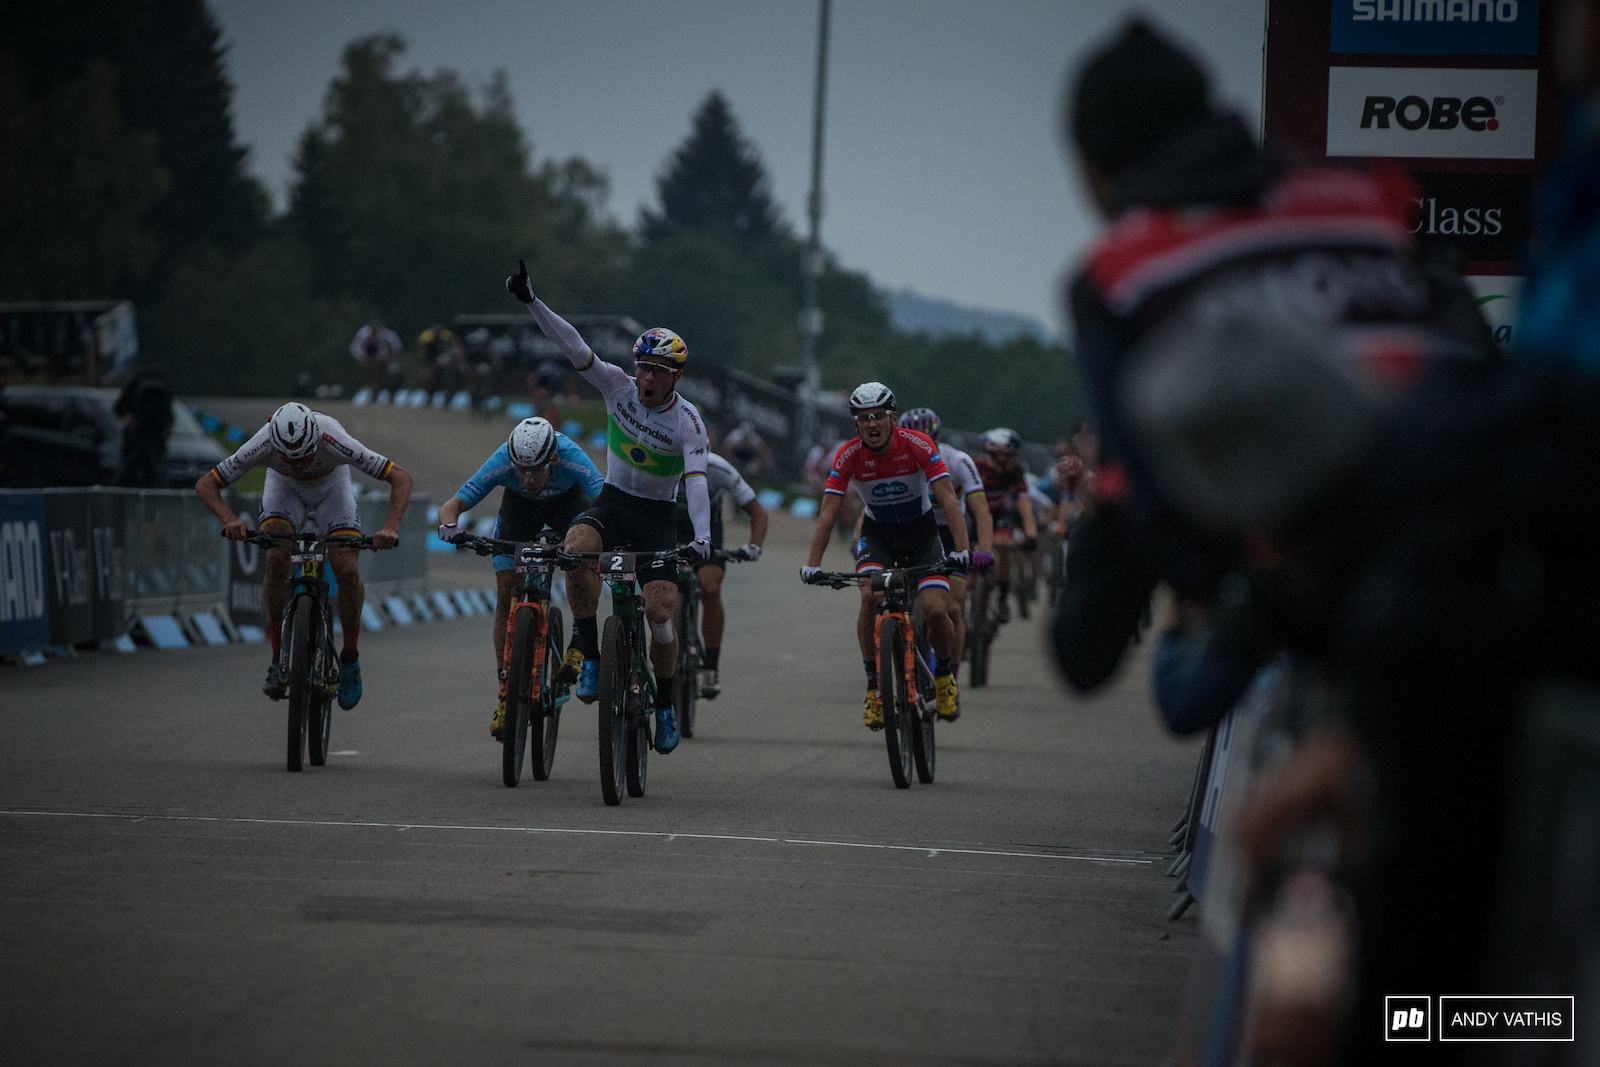 Avancini takes this one as everyone around him sprinted for the finish.